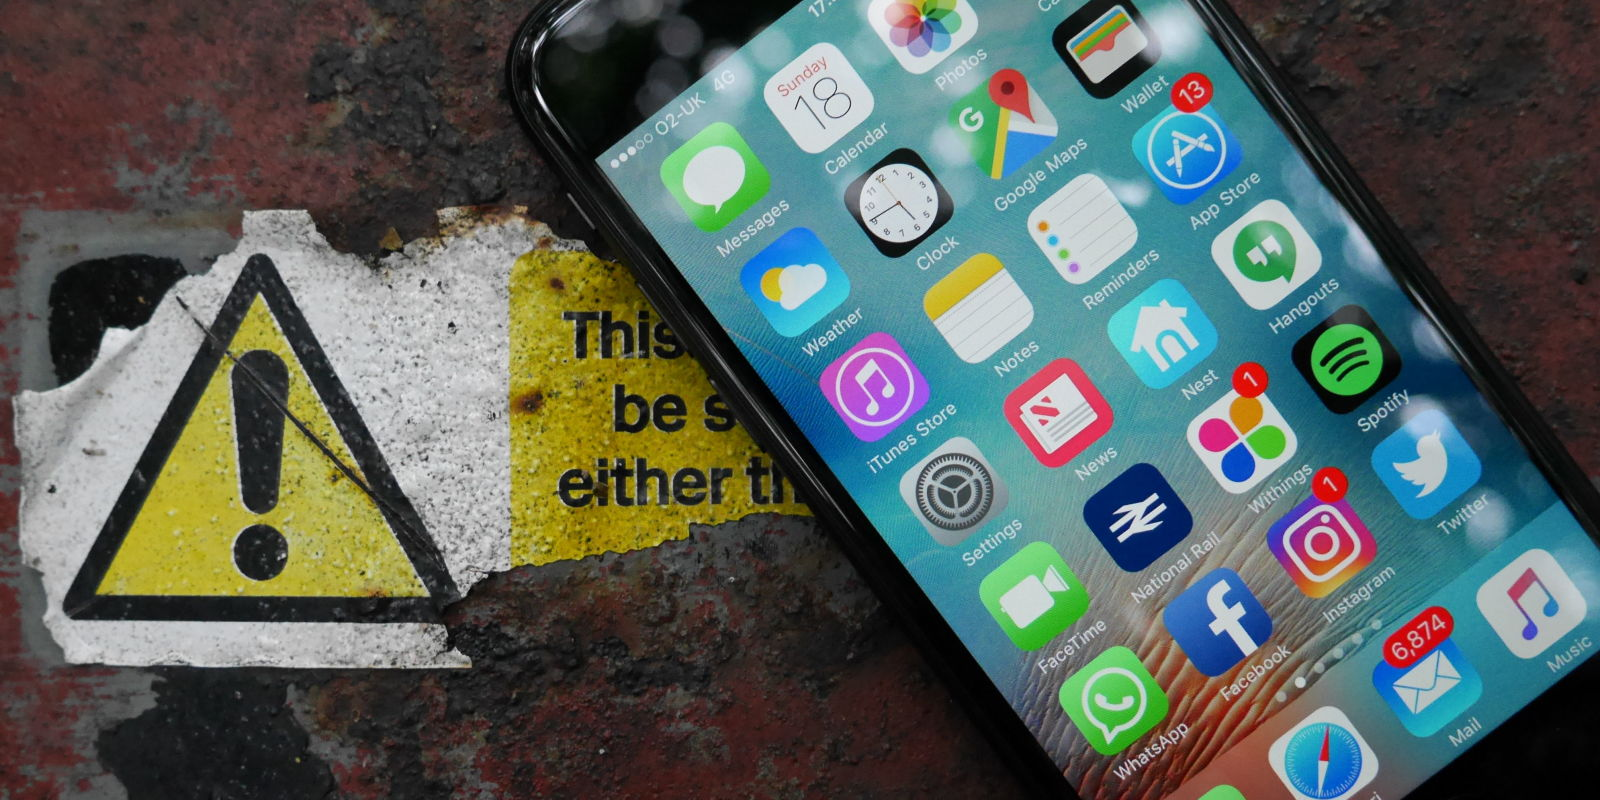 iVerify Can Tell iPhone Users if Their Devices Have Been Hacked